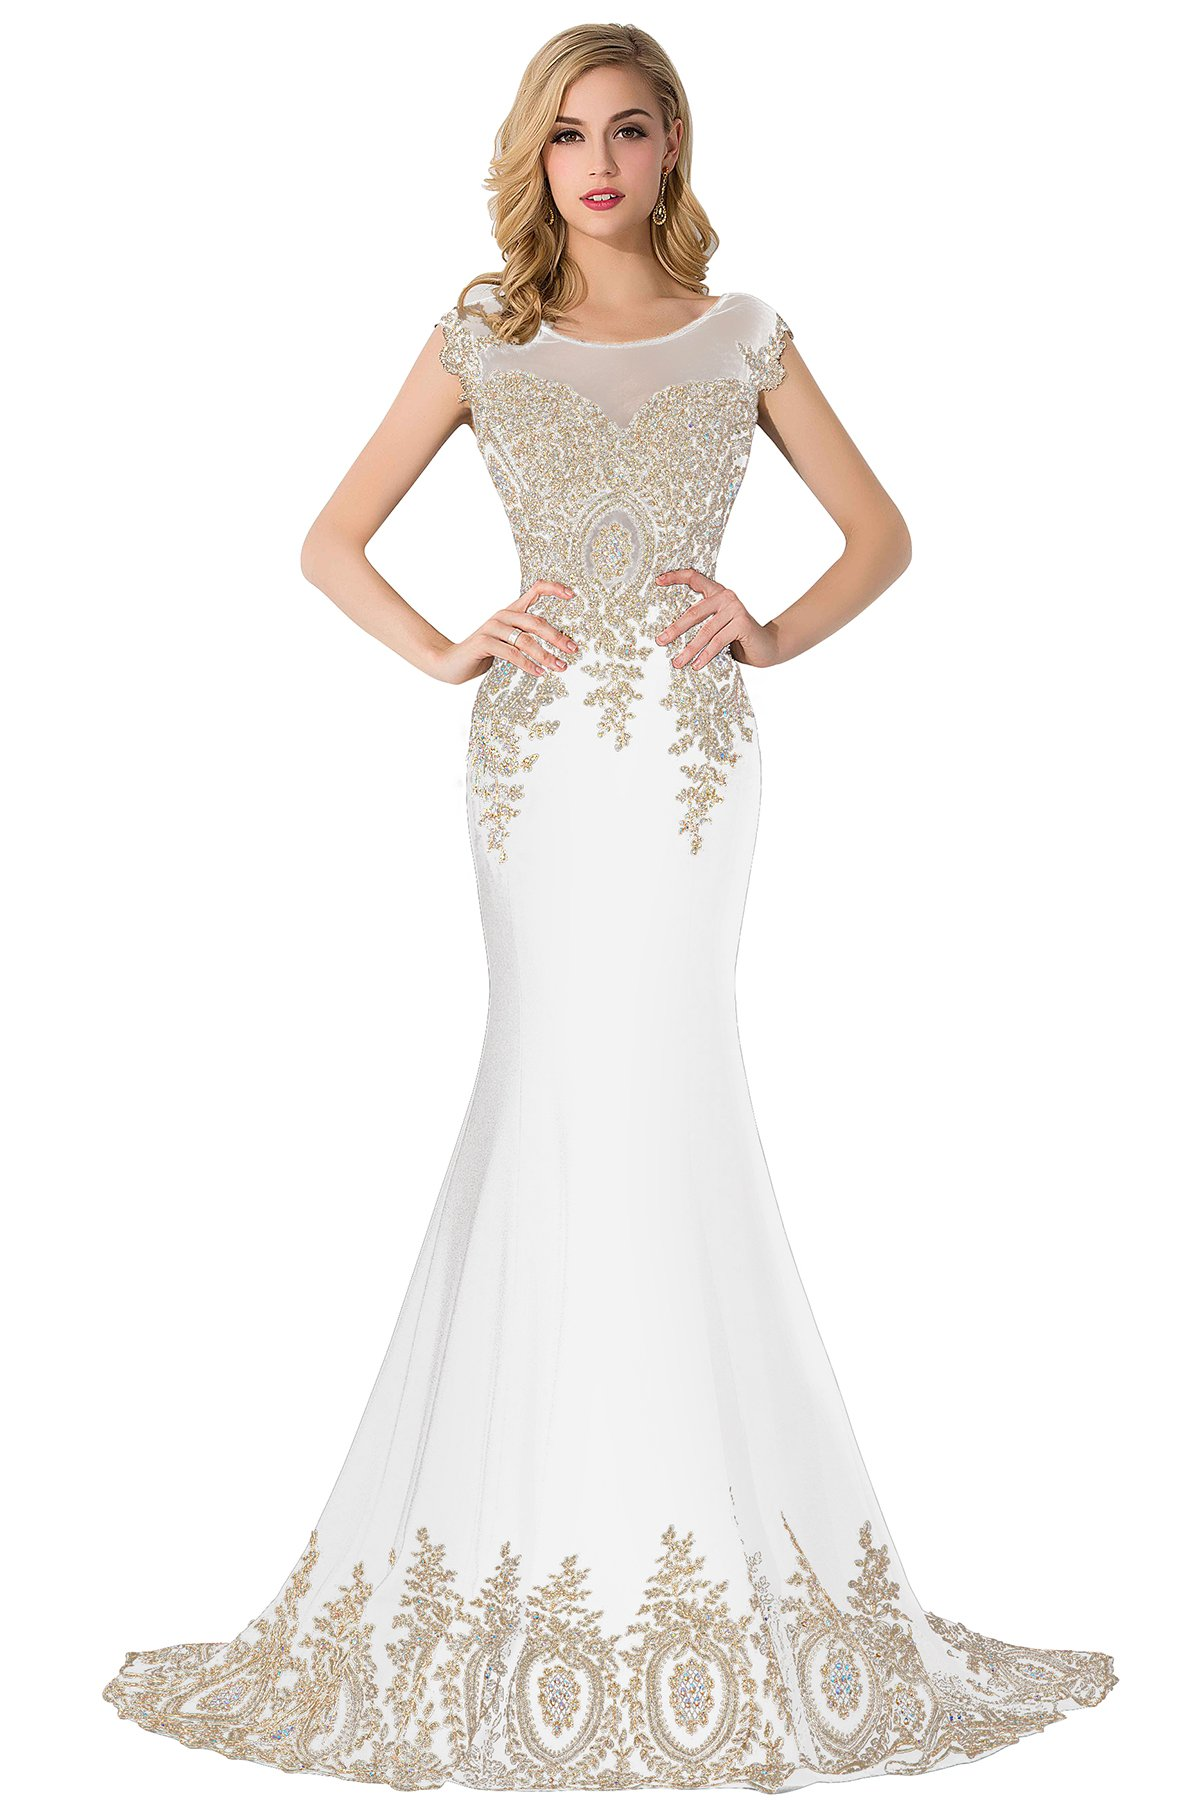 Babyonline Floor Length Evening Dress Lace beads Cap Sleeve Party Prom gowns,white,size:14